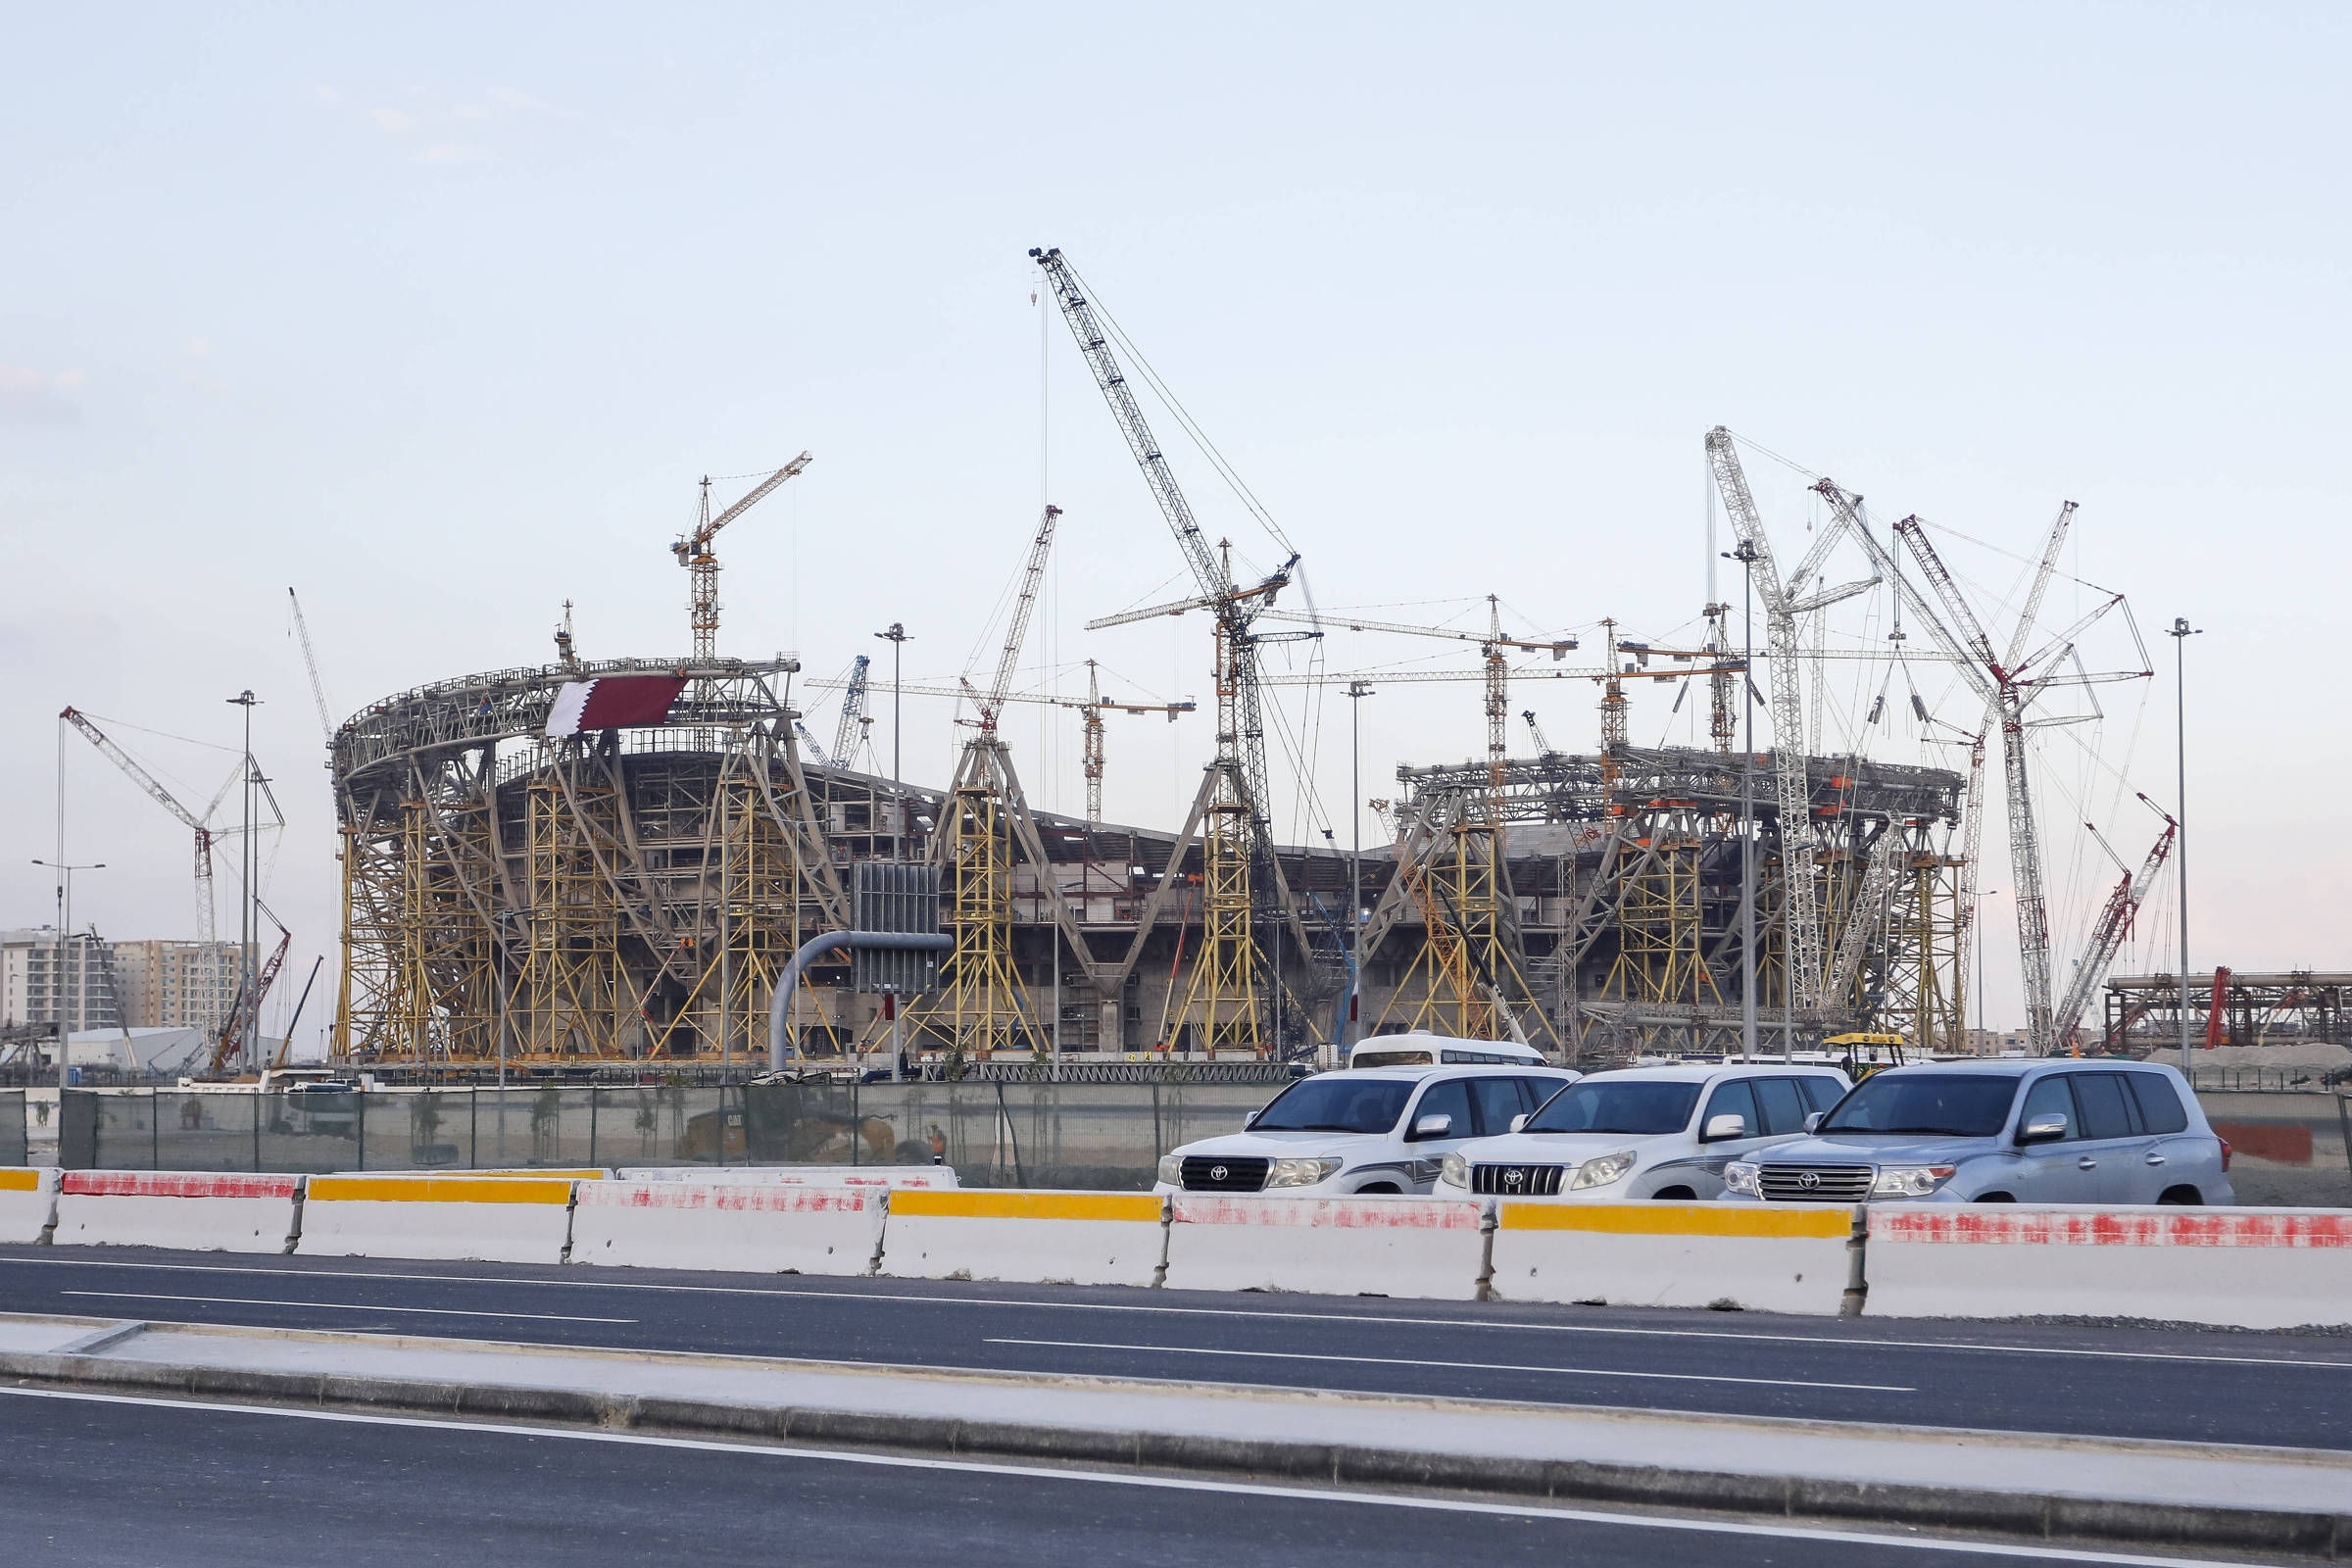 Qatar builds city from scratch to host 2022 World Cup